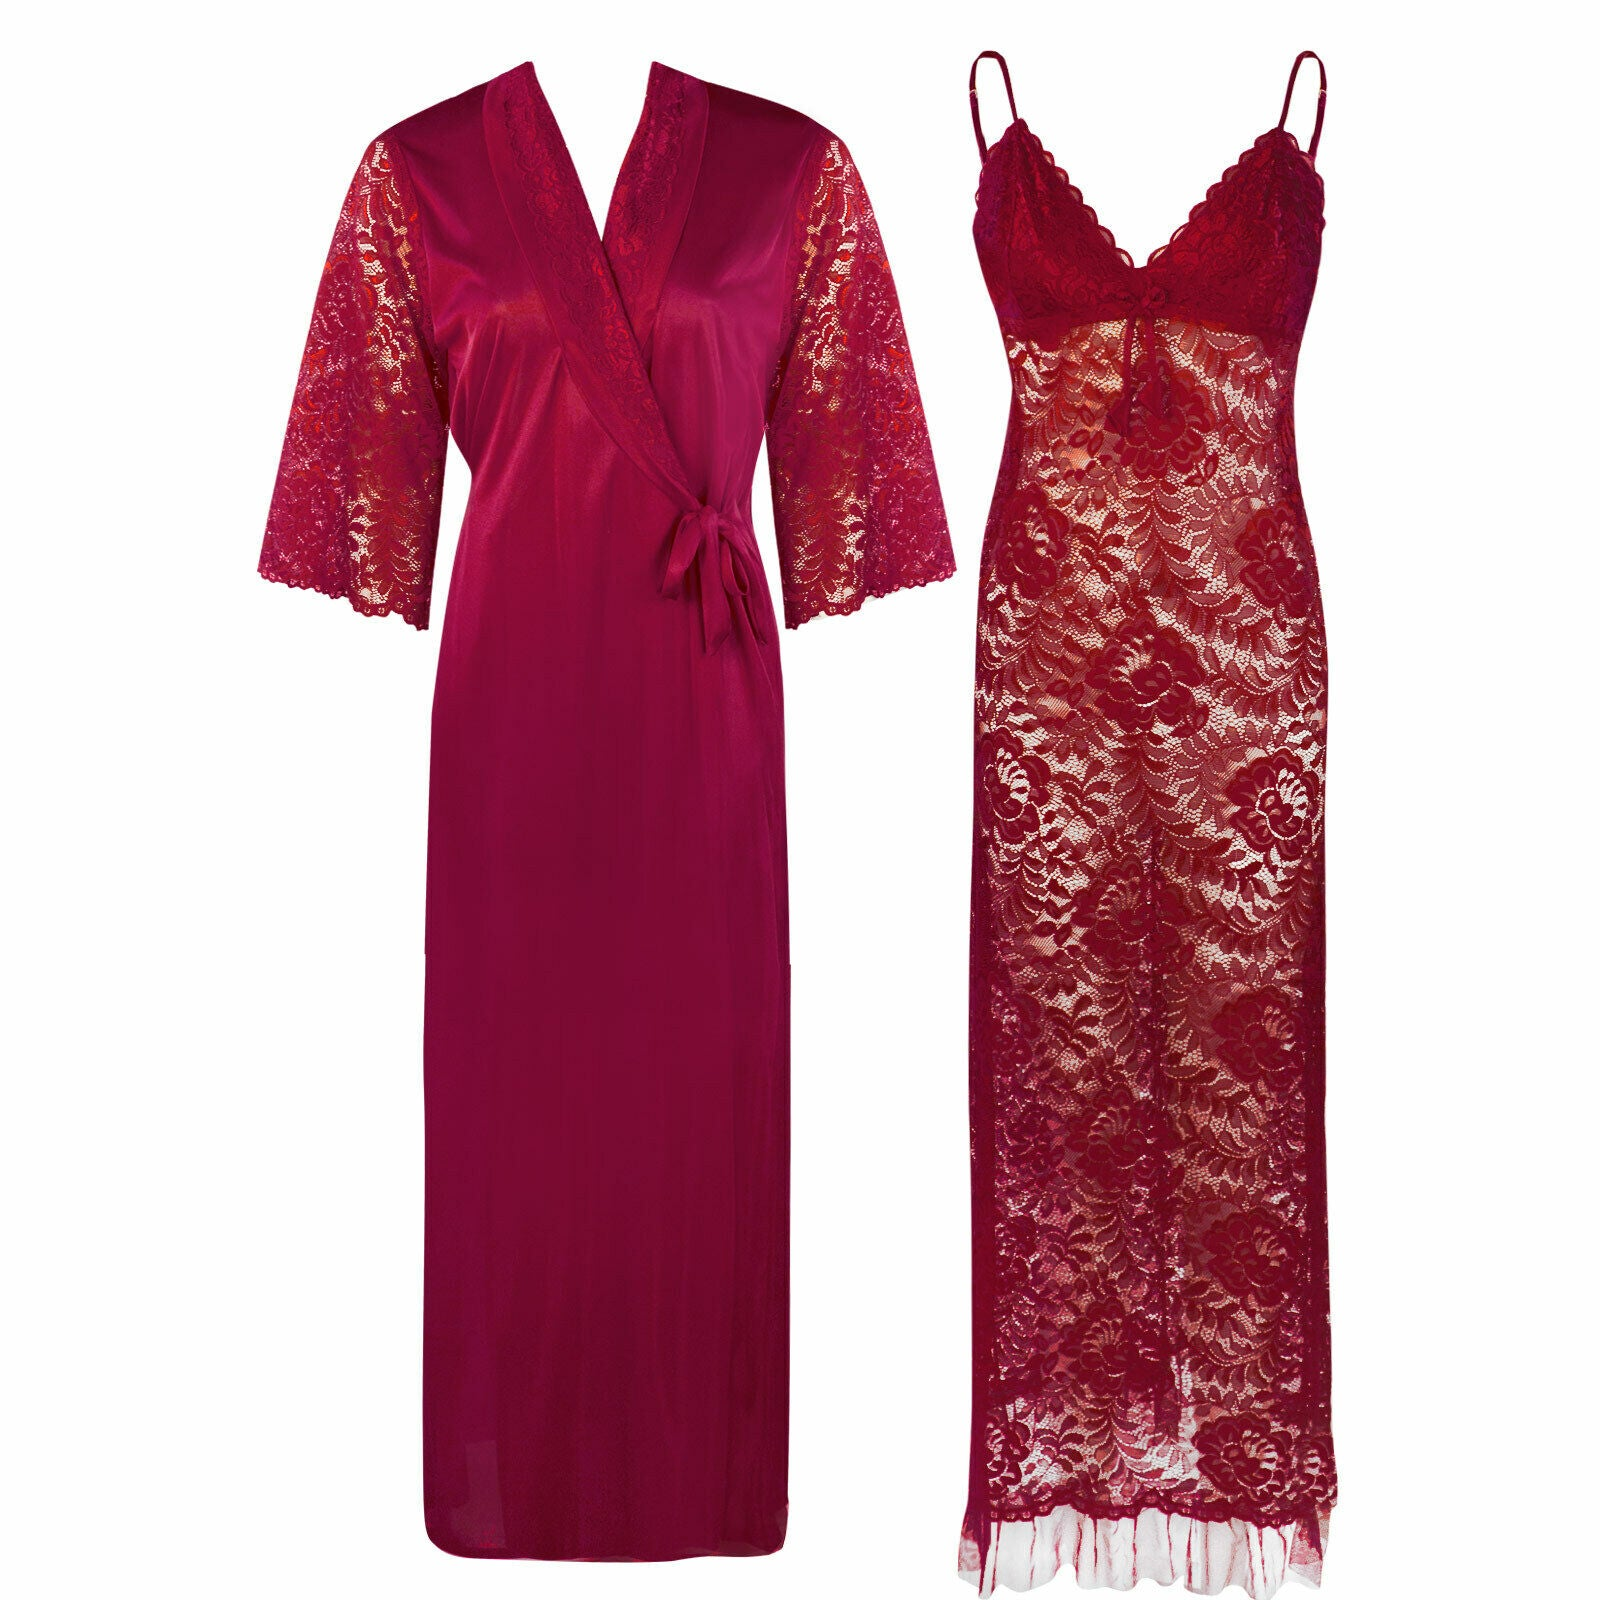 Full Lace Nighty with Satin Robe [colour]- Hautie UK, #Nightfashion | #Underfashion ONE, FREE SIZE S M L XL  WINE